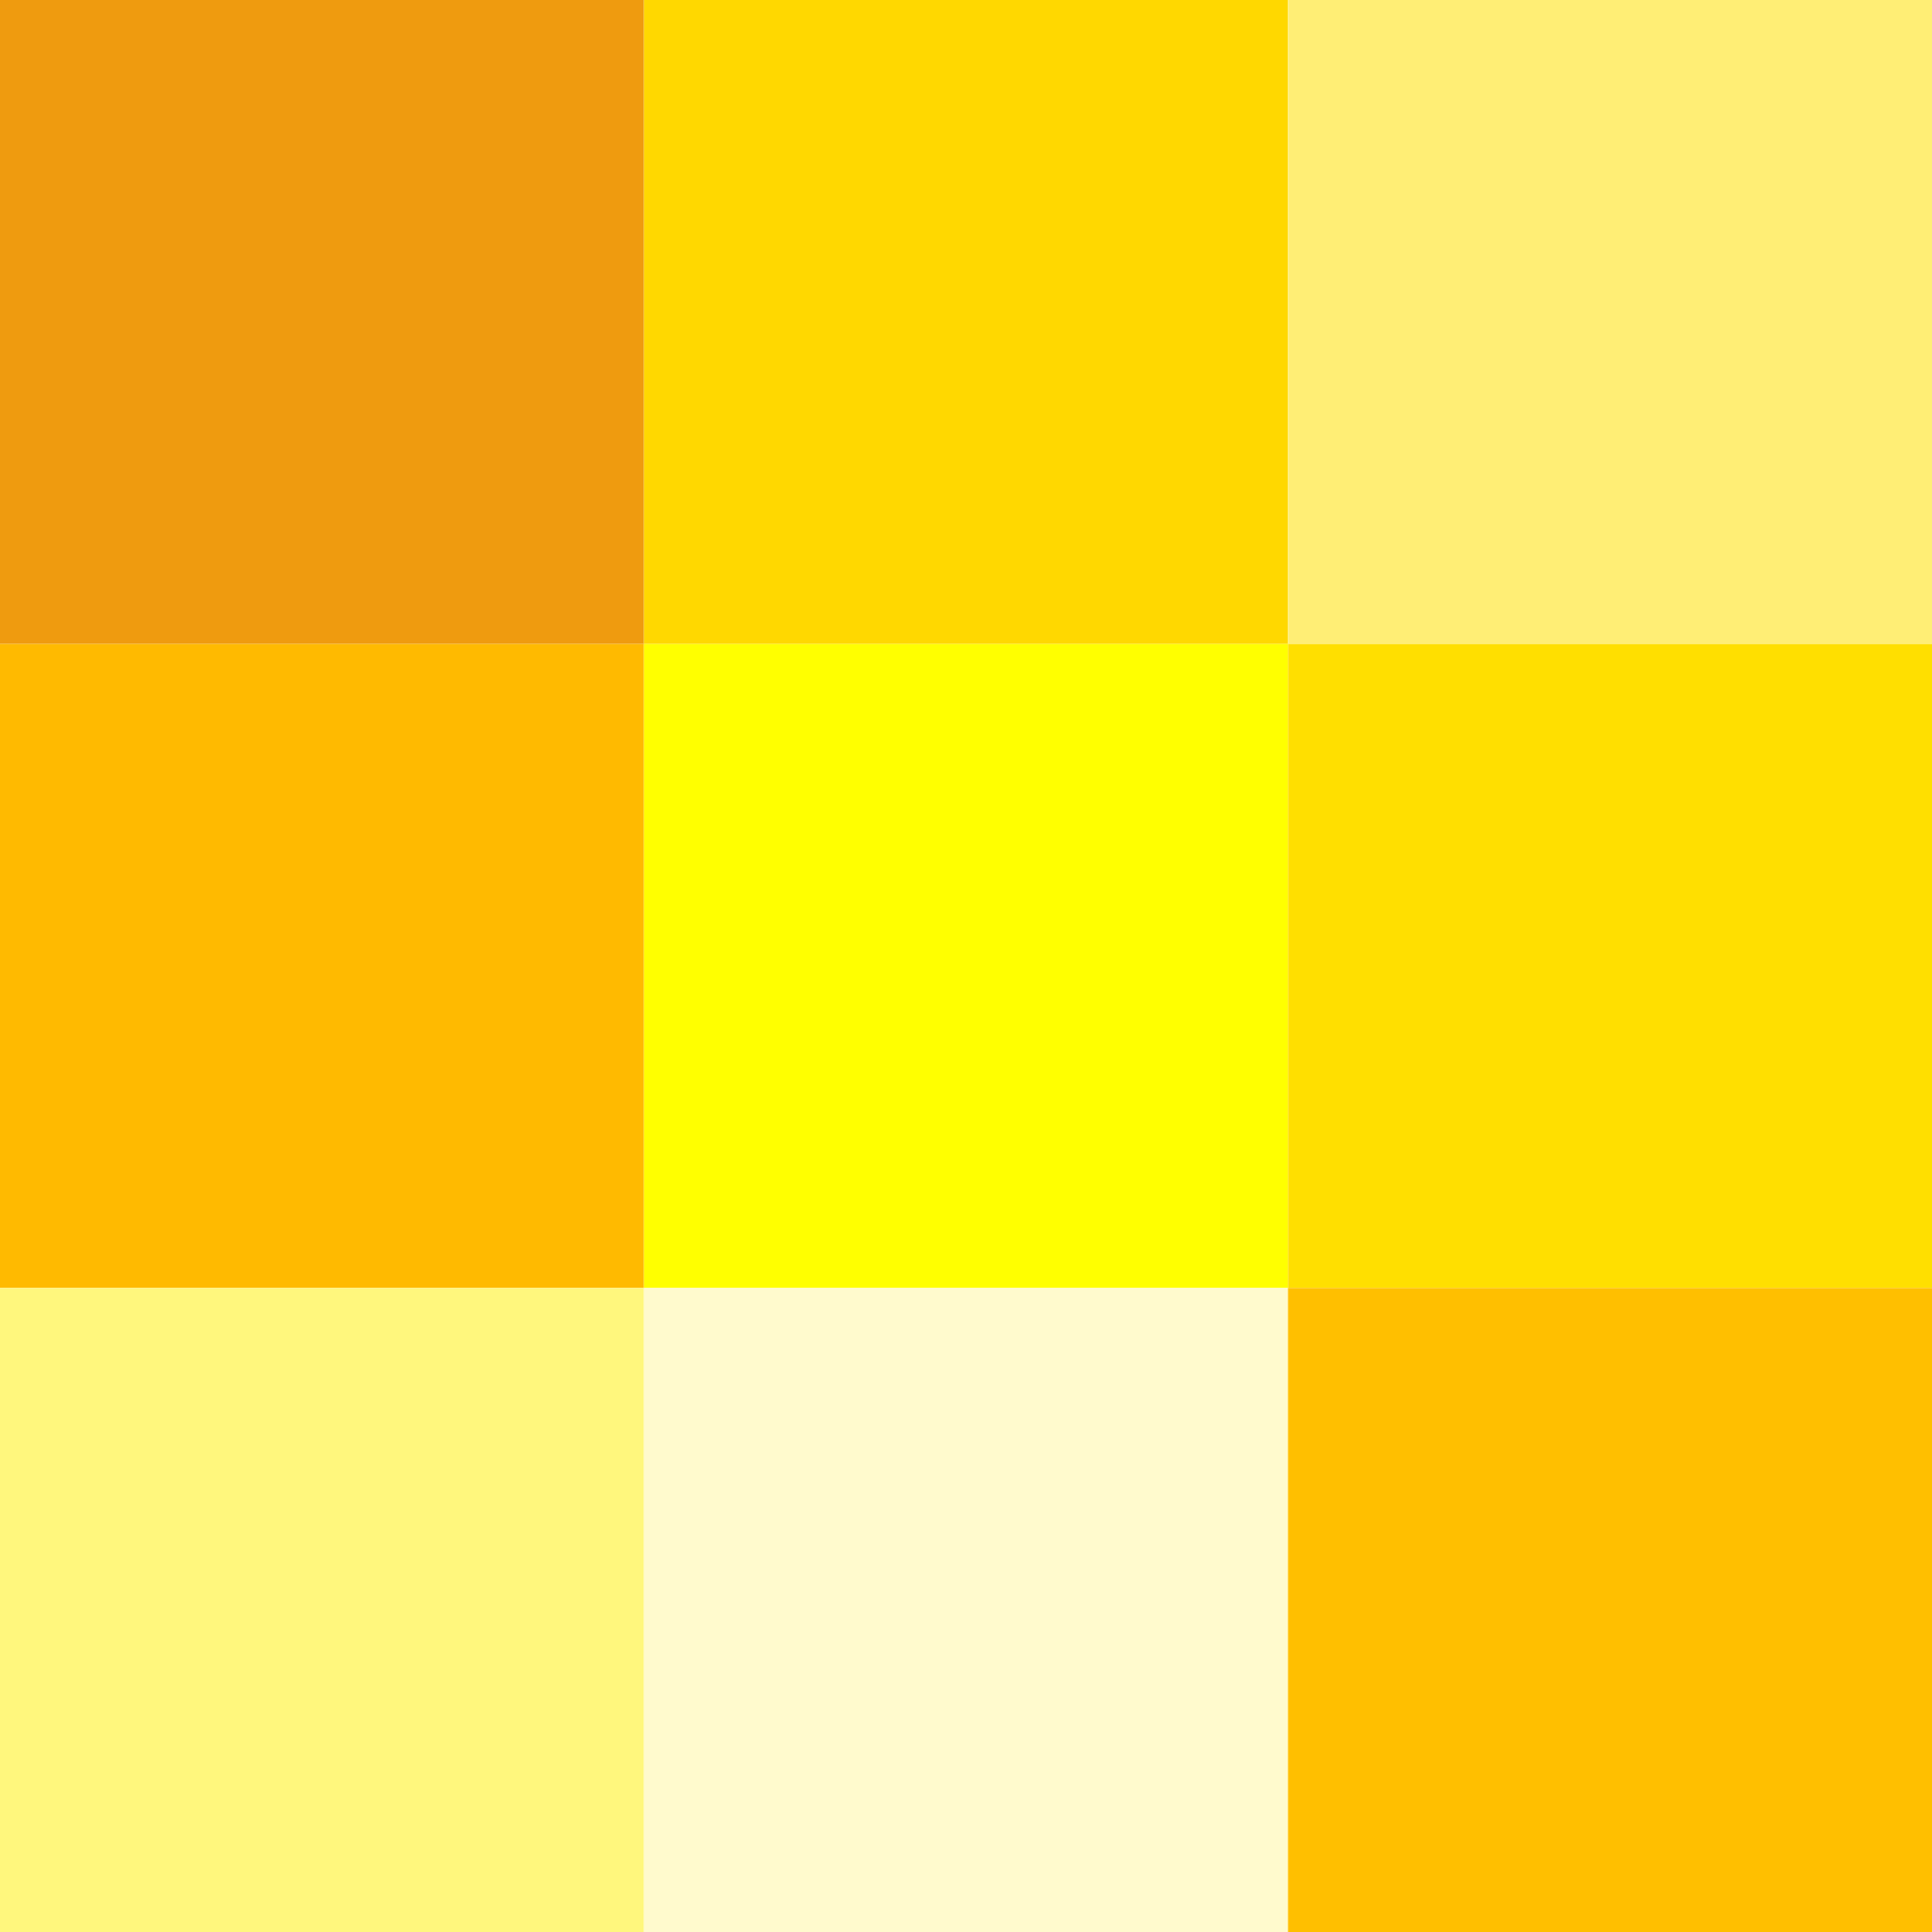 File:Color icon yellow.svg - Wikimedia Commons